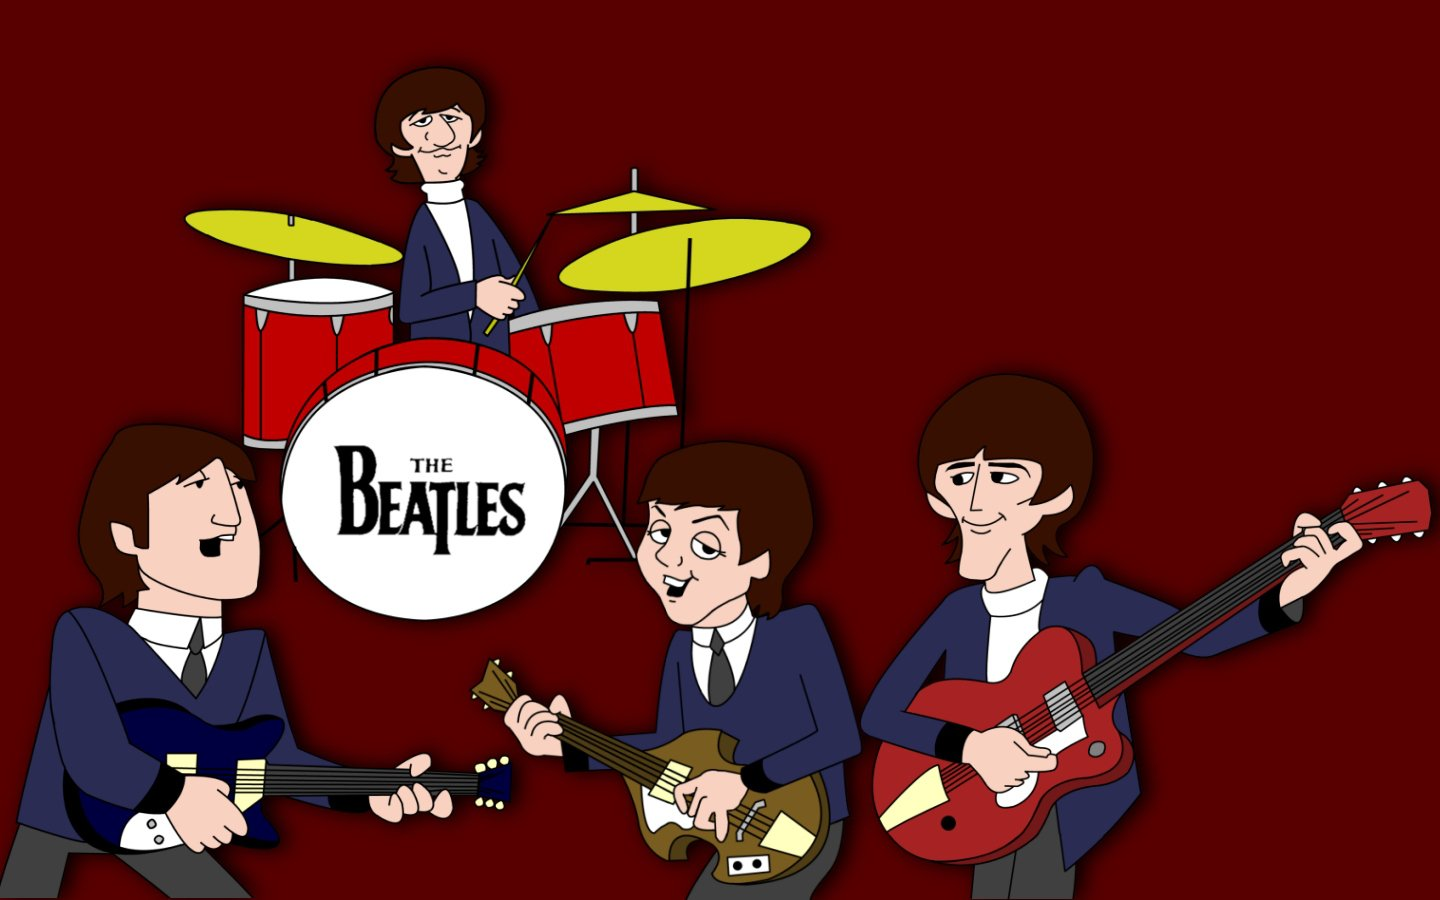 The Beatles Cartoon TV Show Wallpaper and Background Image ...